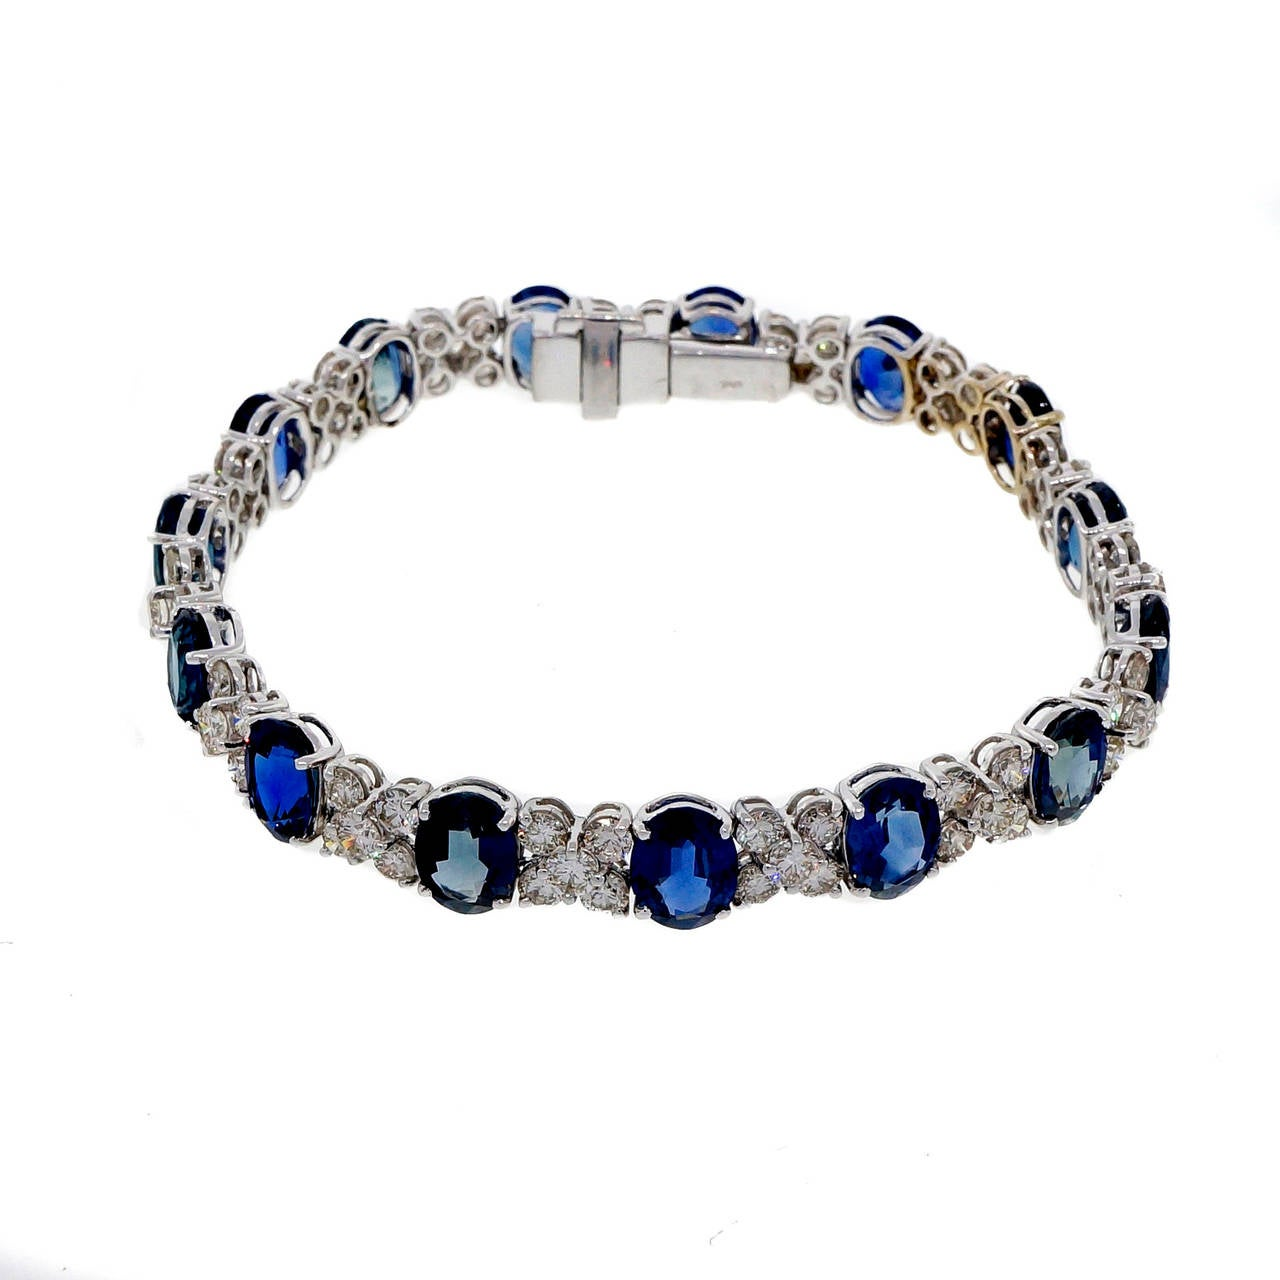 id sale jewelry sapphire l for and bangles j diamond bracelet bangle bracelets gold z at